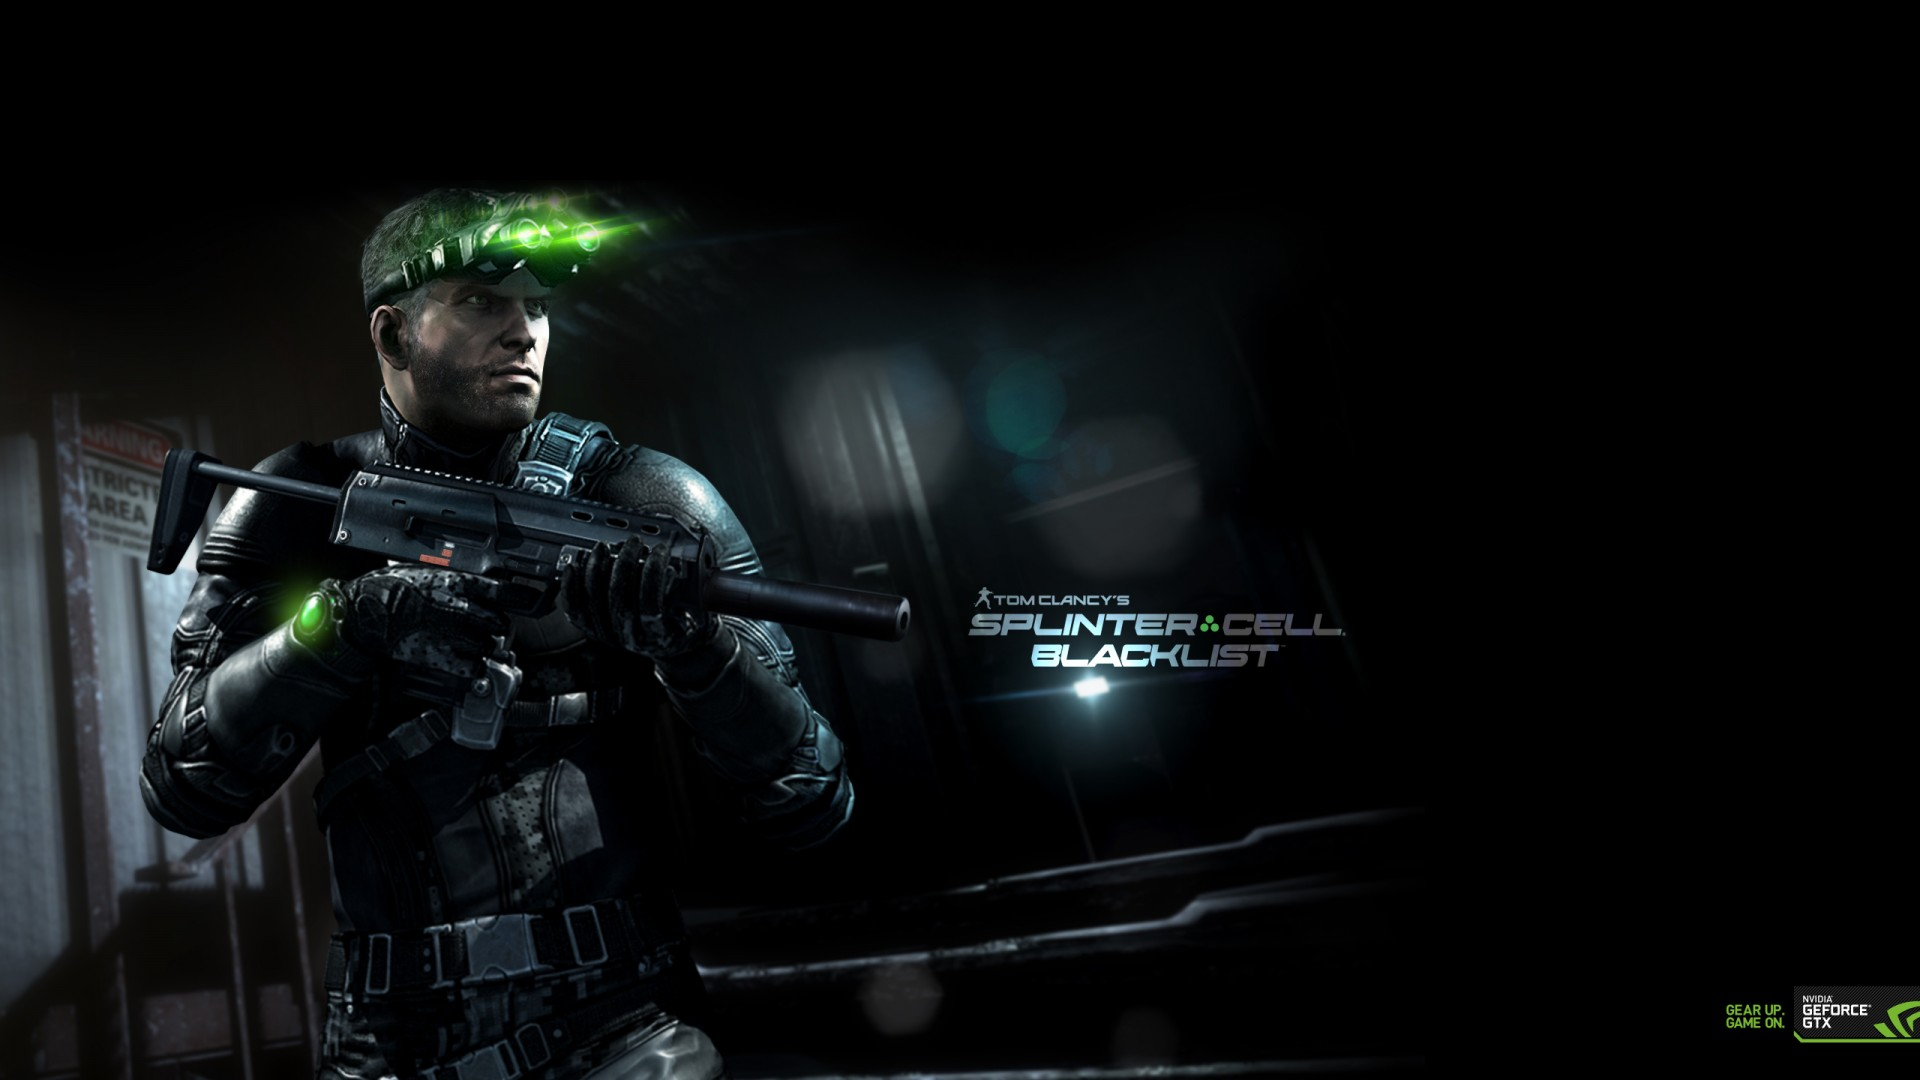 Animals In Suits Wallpaper Splinter Cell Blacklist Wallpapers Hd Wallpapers Id 12928